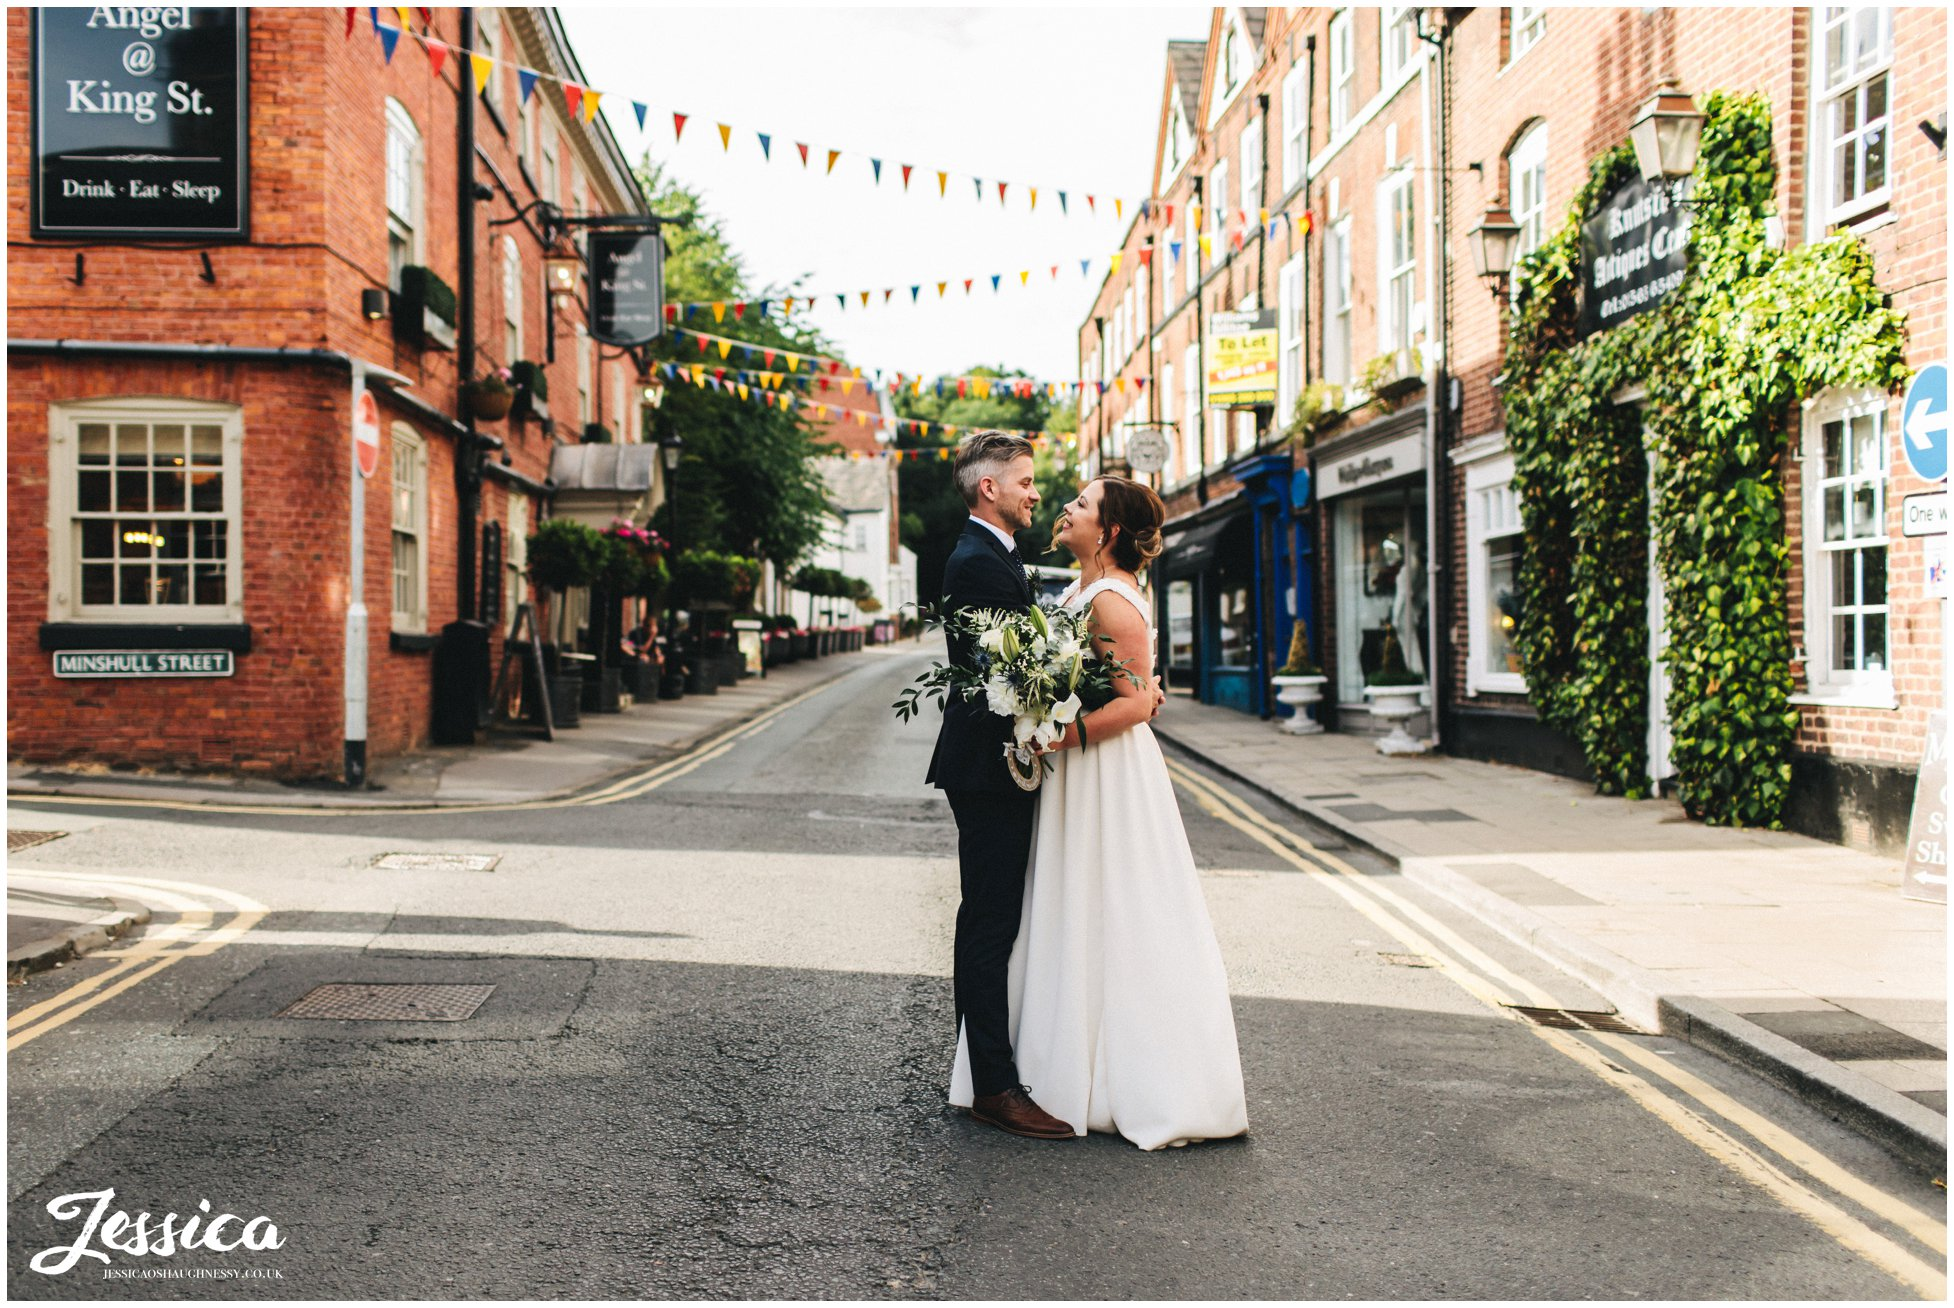 the newly wed's kiss in the middle of the road decorated with bunting